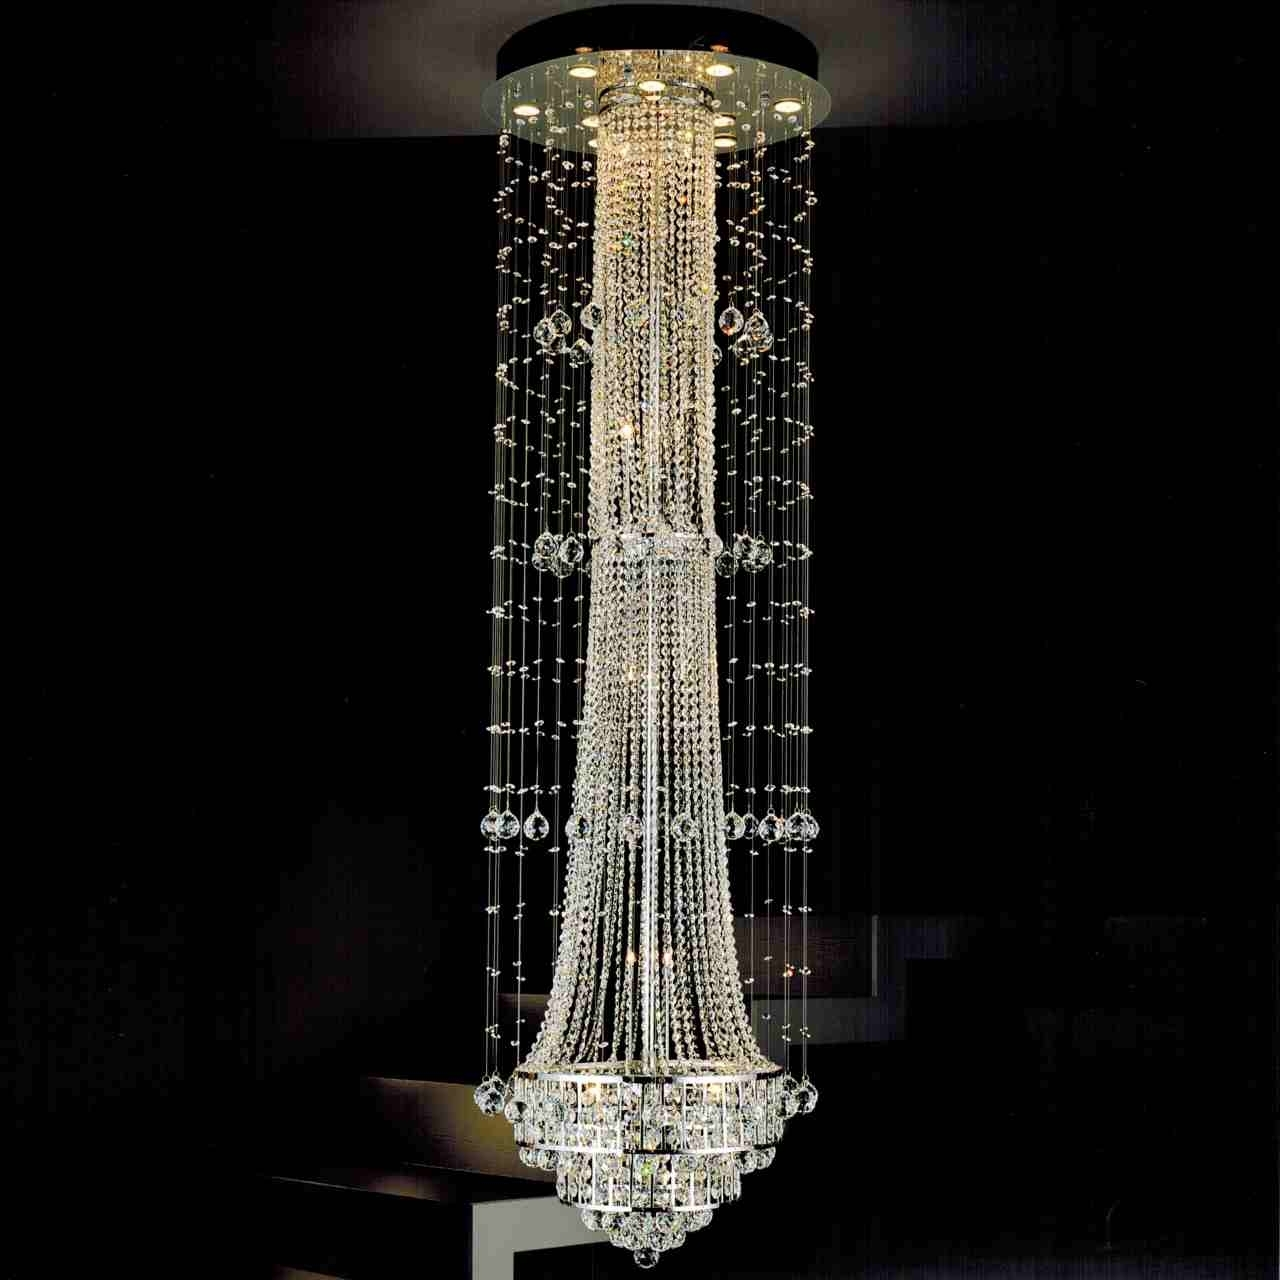 Brizzo Lighting Stores Regarding Most Recent Ultra Modern Chandeliers (View 2 of 15)